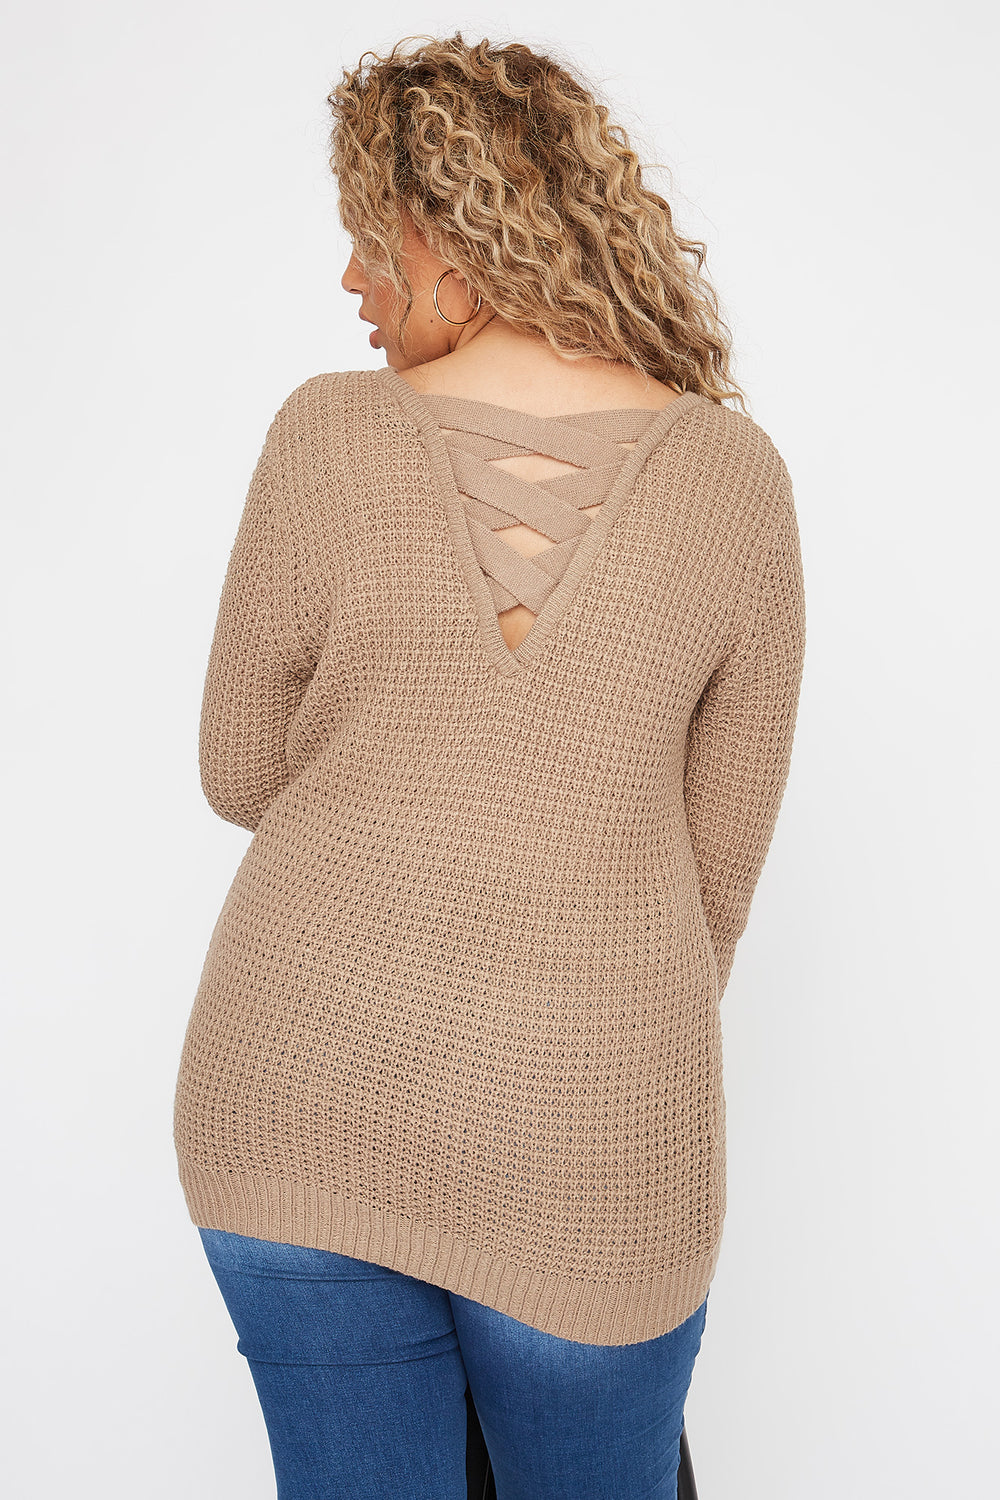 Plus Size Crochet Cross Back Sweater Khaki